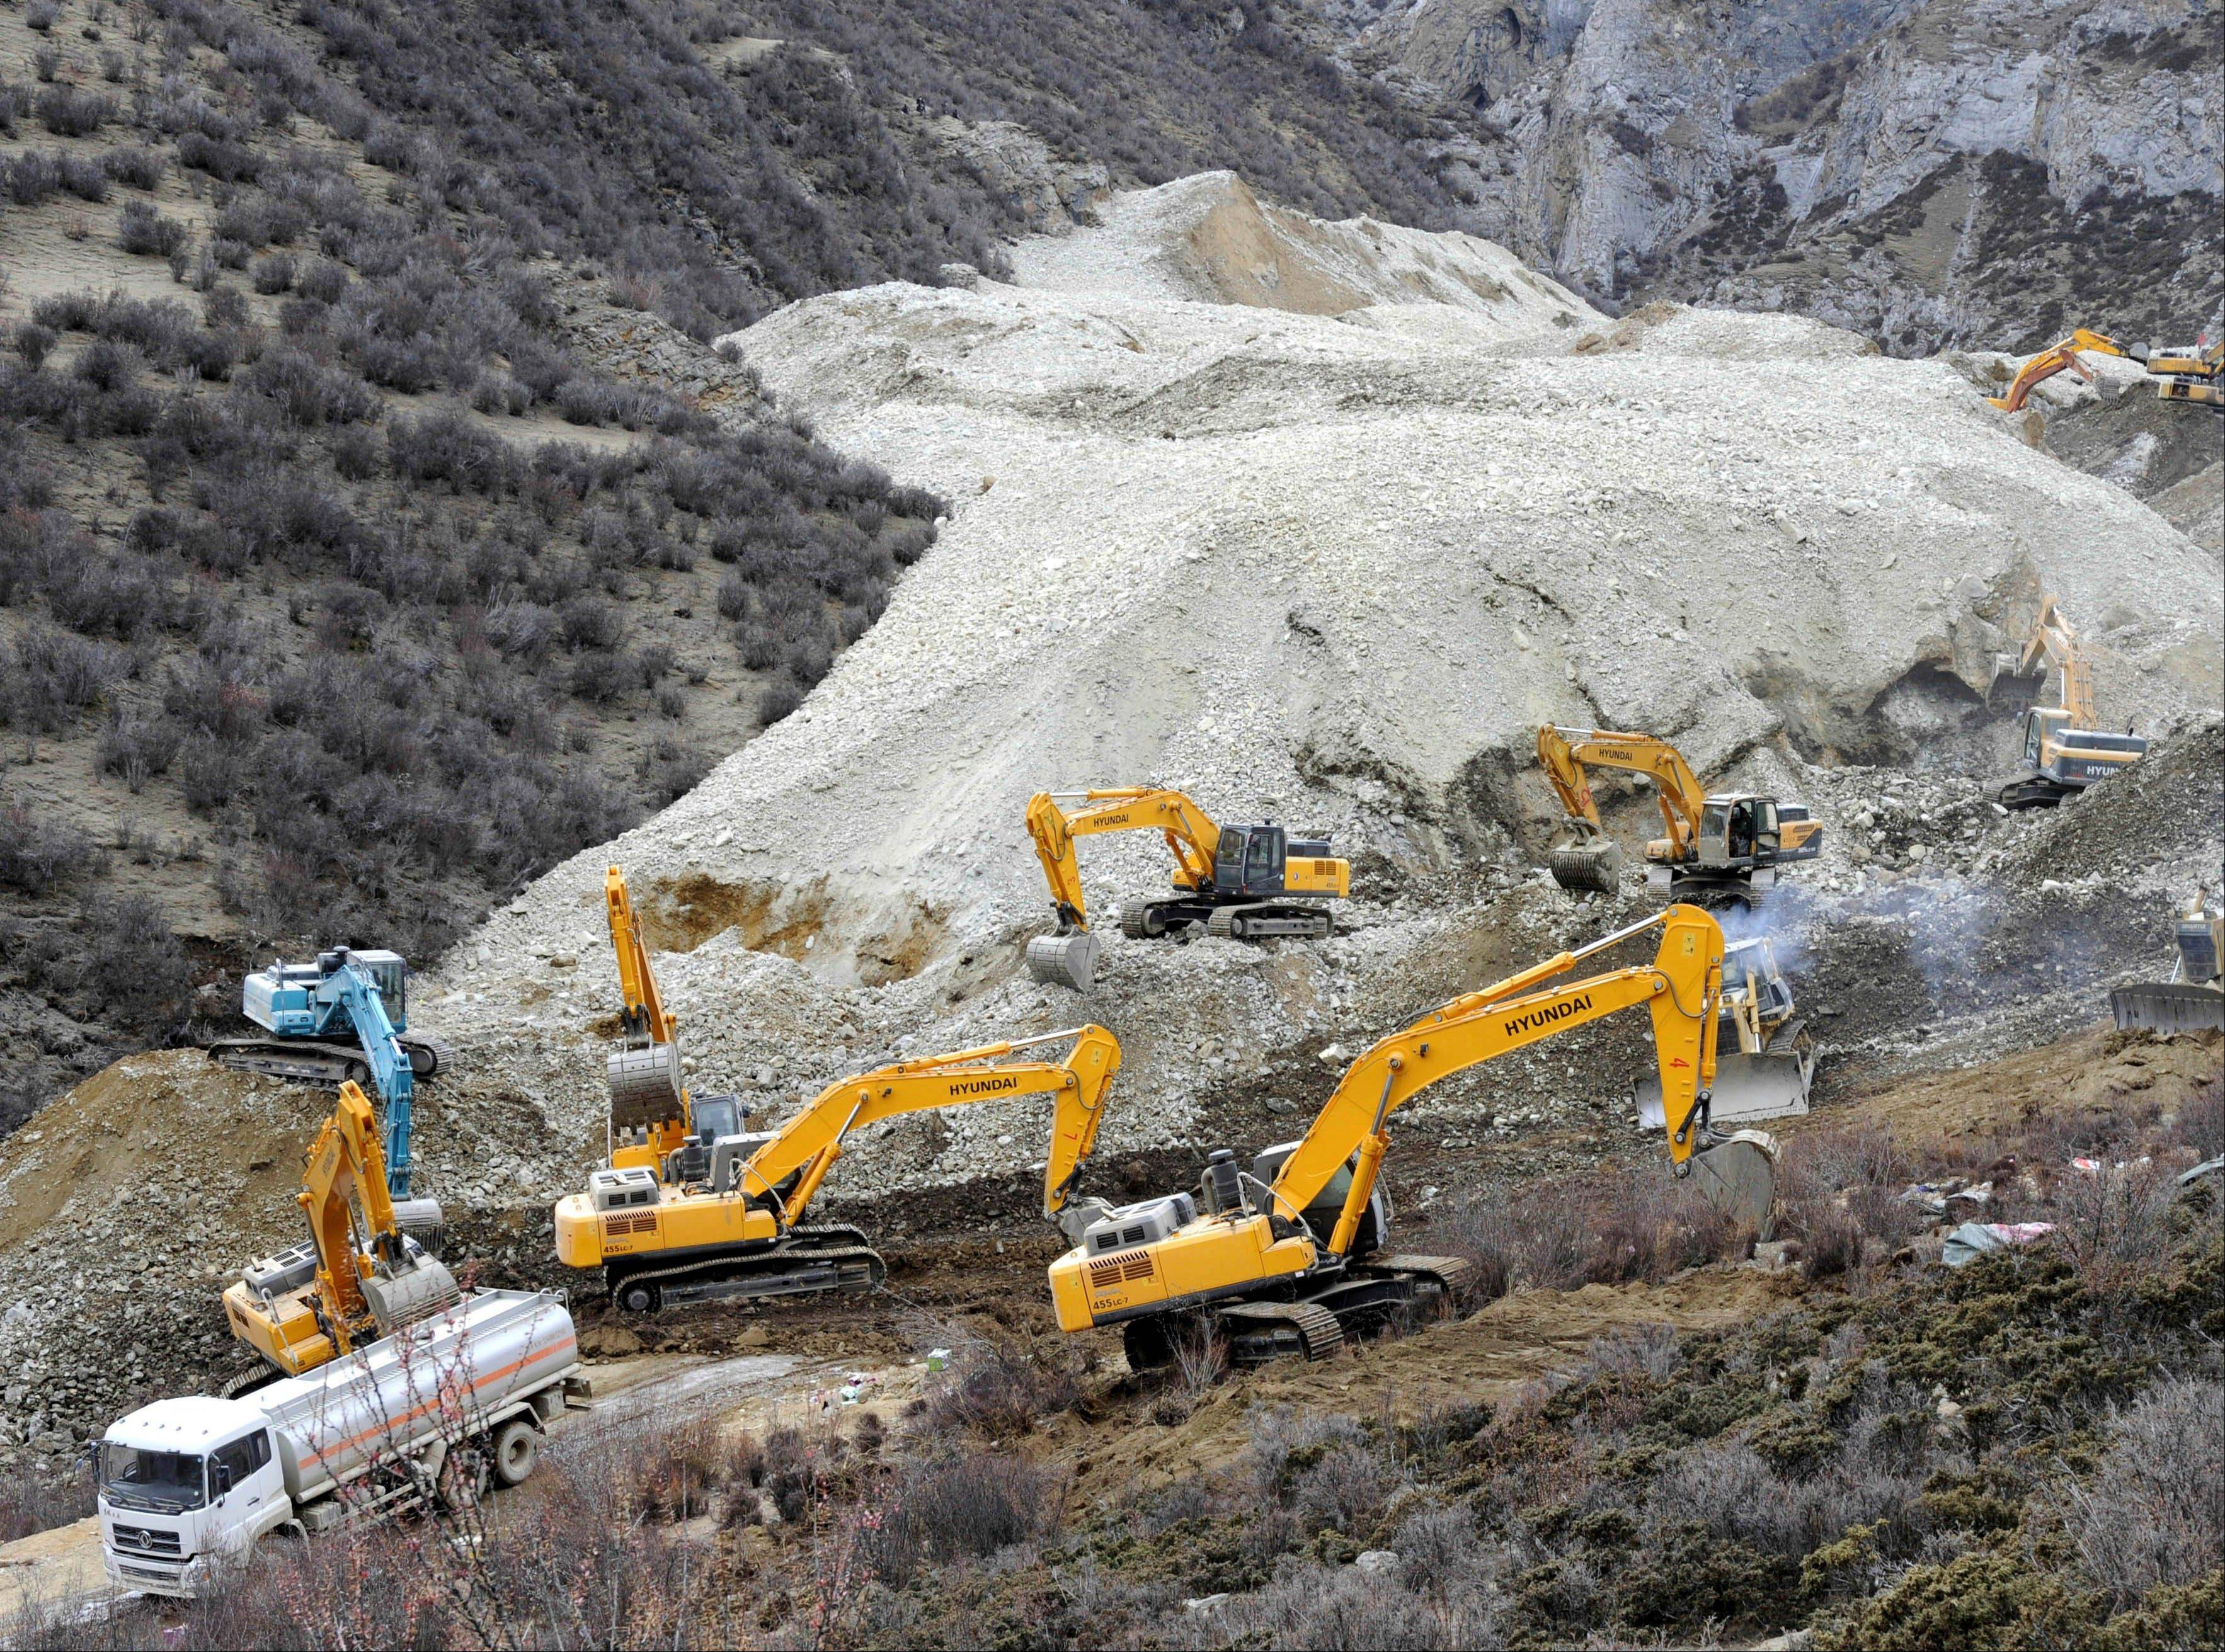 Earthmovers remove rocks and mud on the scene where a landslide hit a mining area in Maizhokunggar County of Lhasa, southwest China.